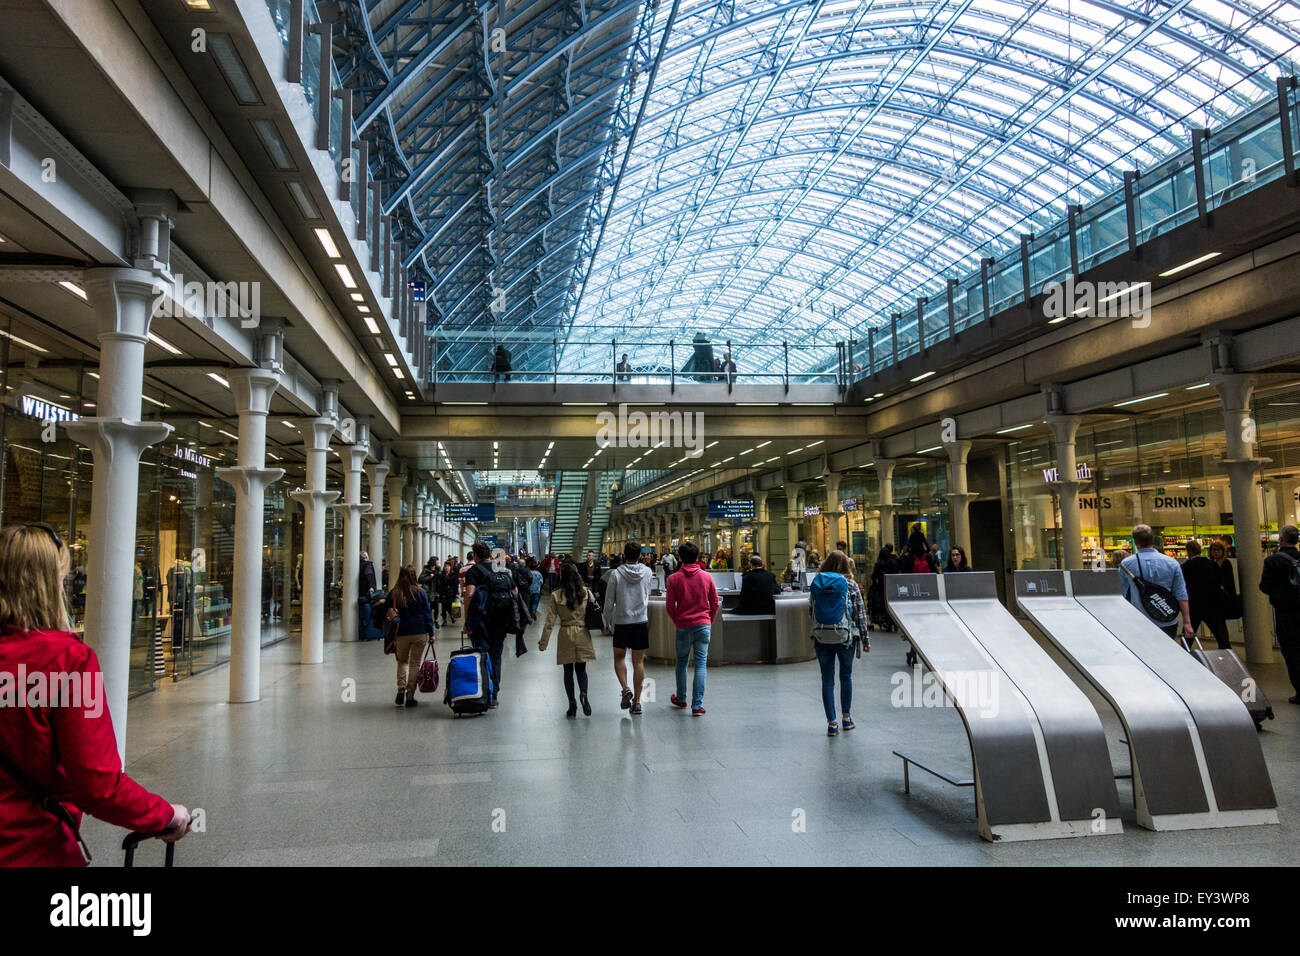 St Pancras International Station, London, England, UK. - Stock Image